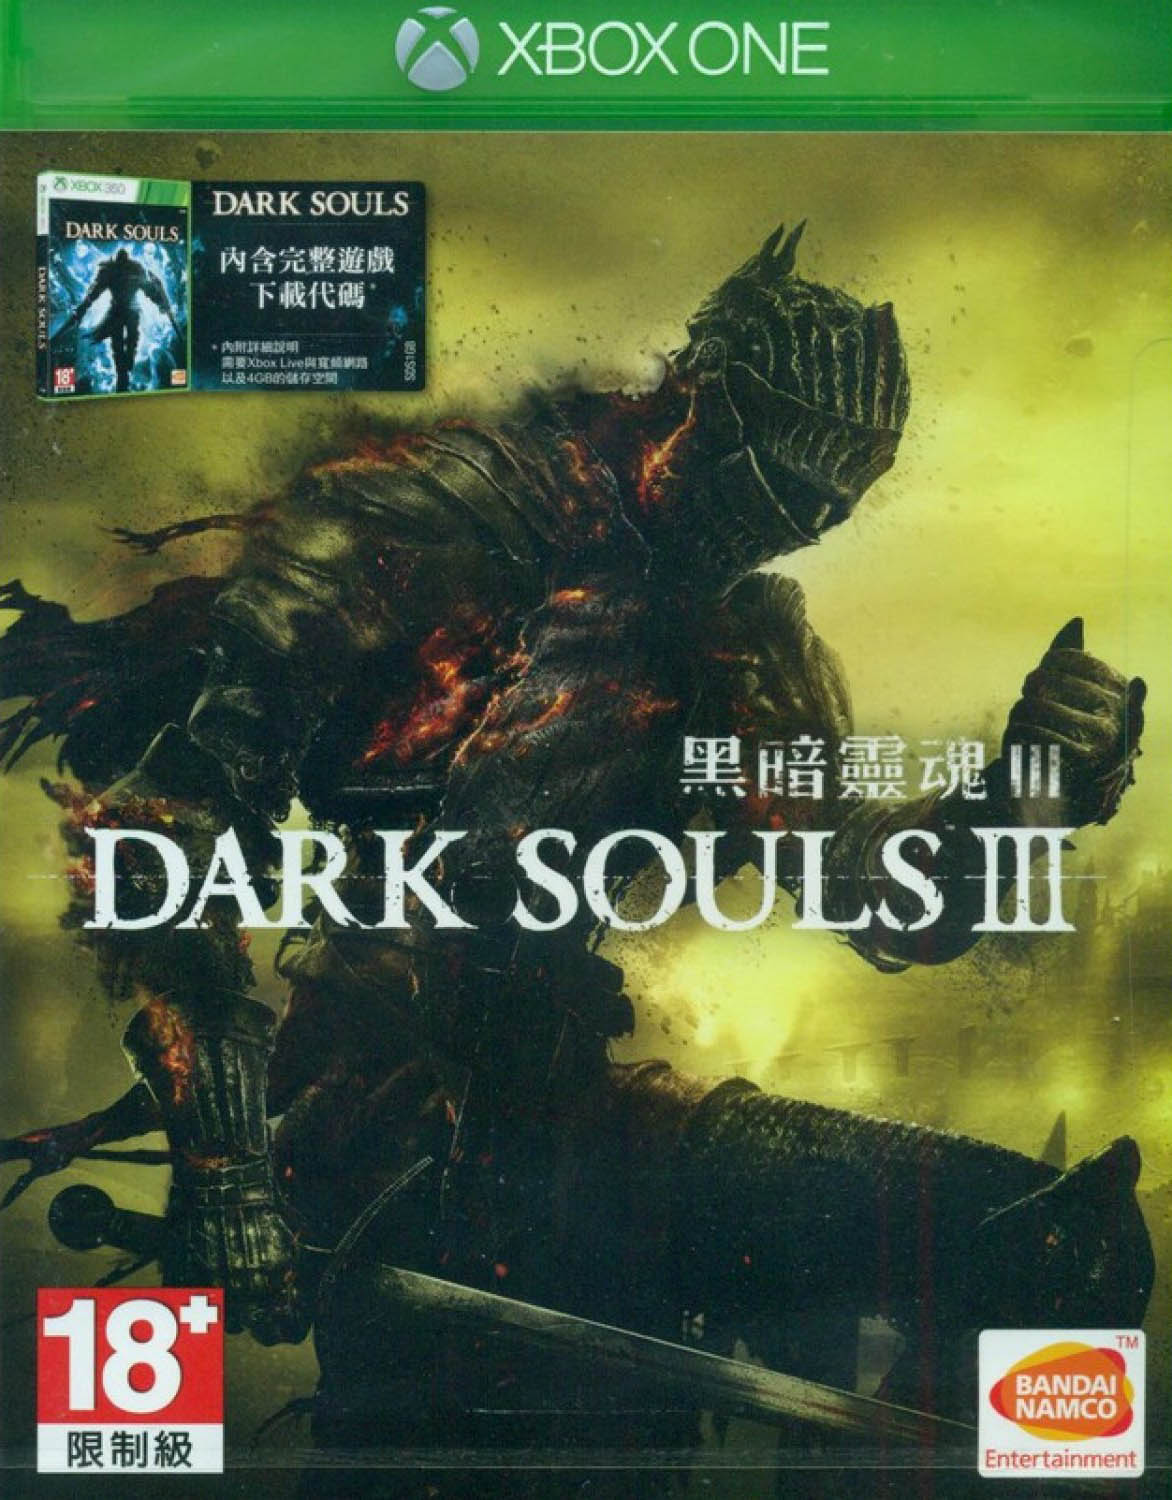 Dark Souls III Xbox One издание в Азии